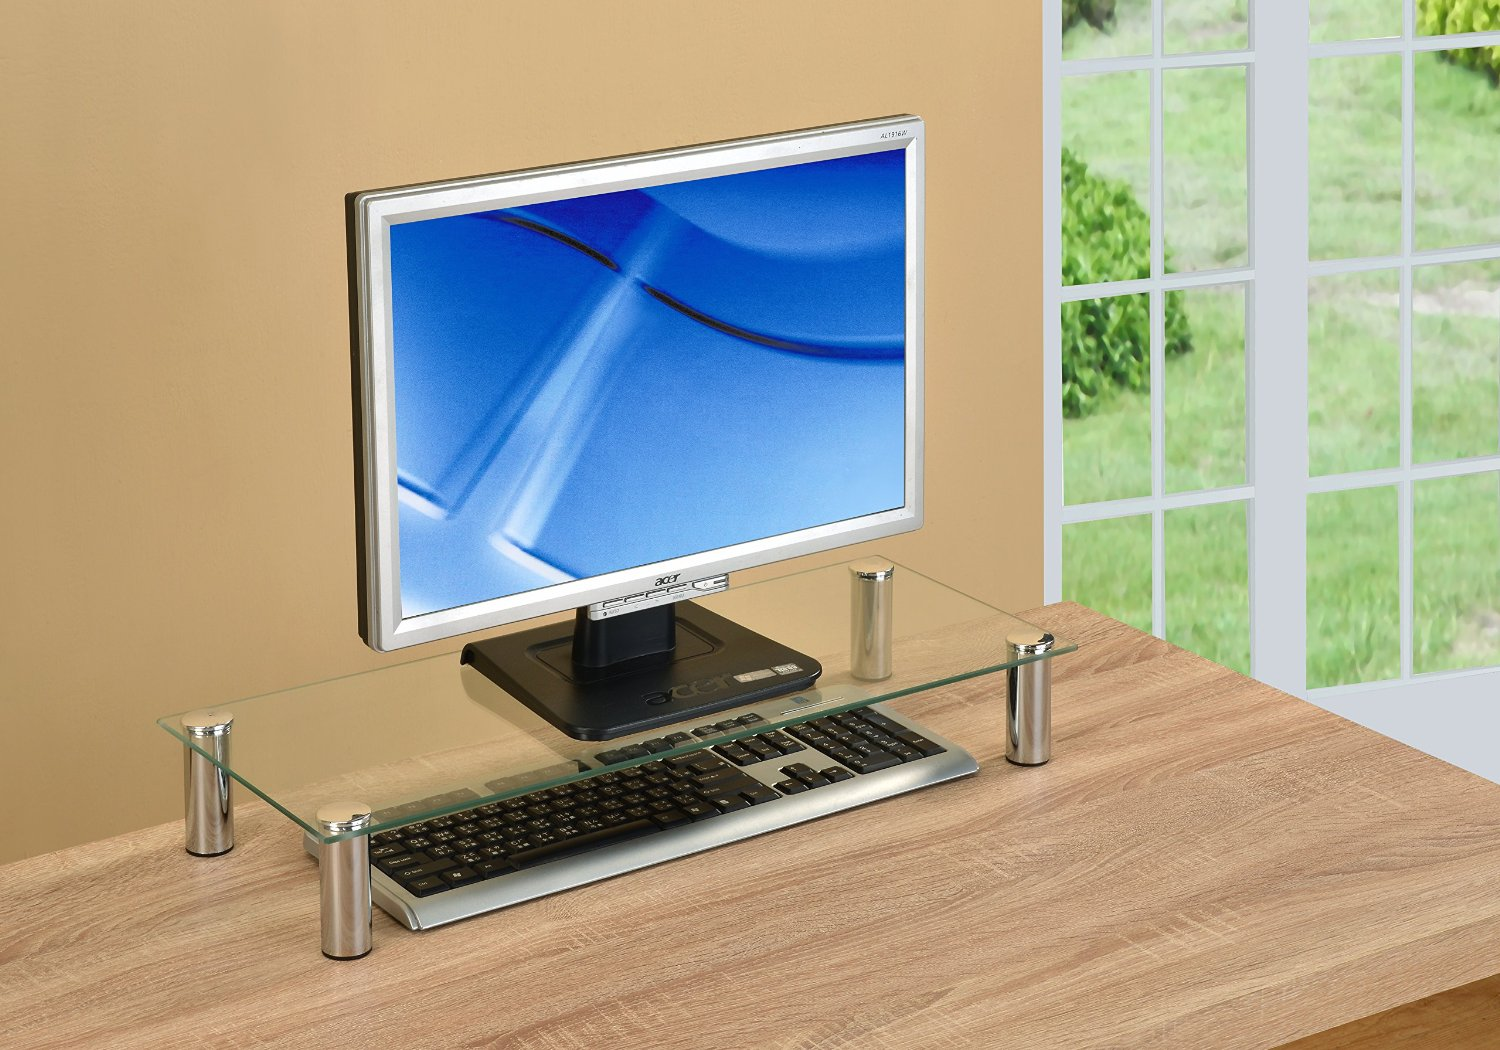 Metal Computer Monitor Riser Glass Stand, Desk Organizer, Laptop - Clear and Chrome